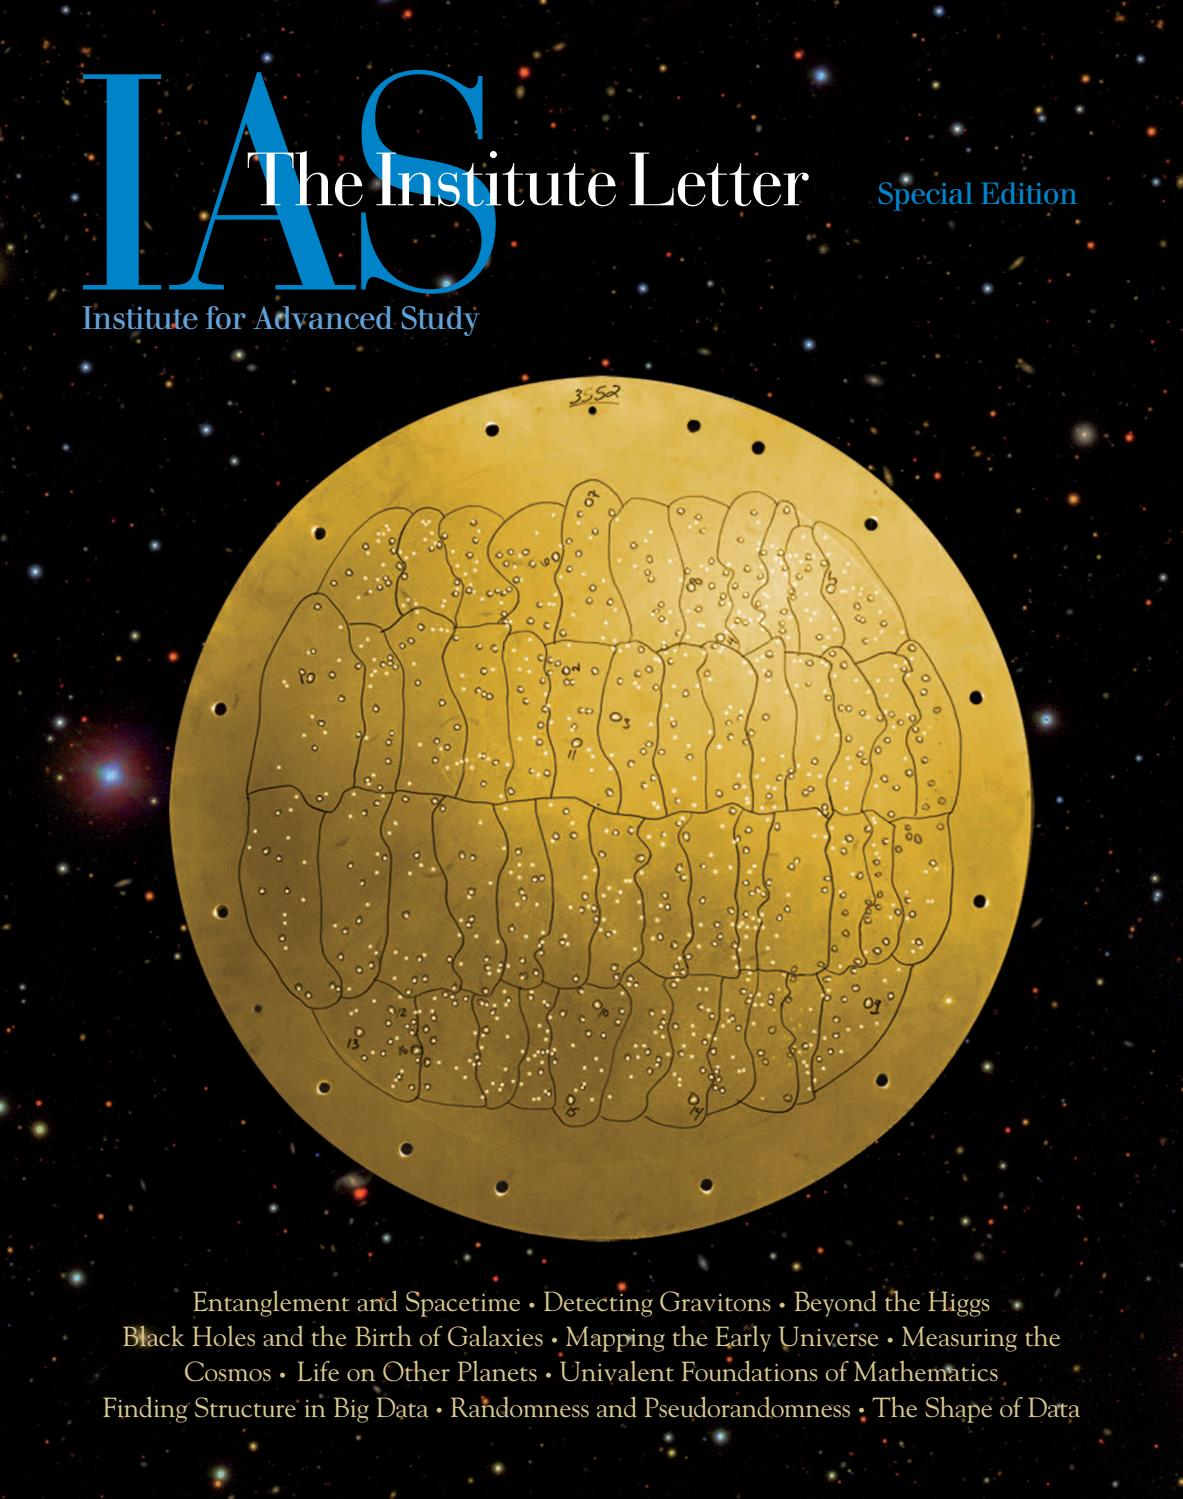 Institute Letter Special Edition by Institute for Advanced Study - issuu